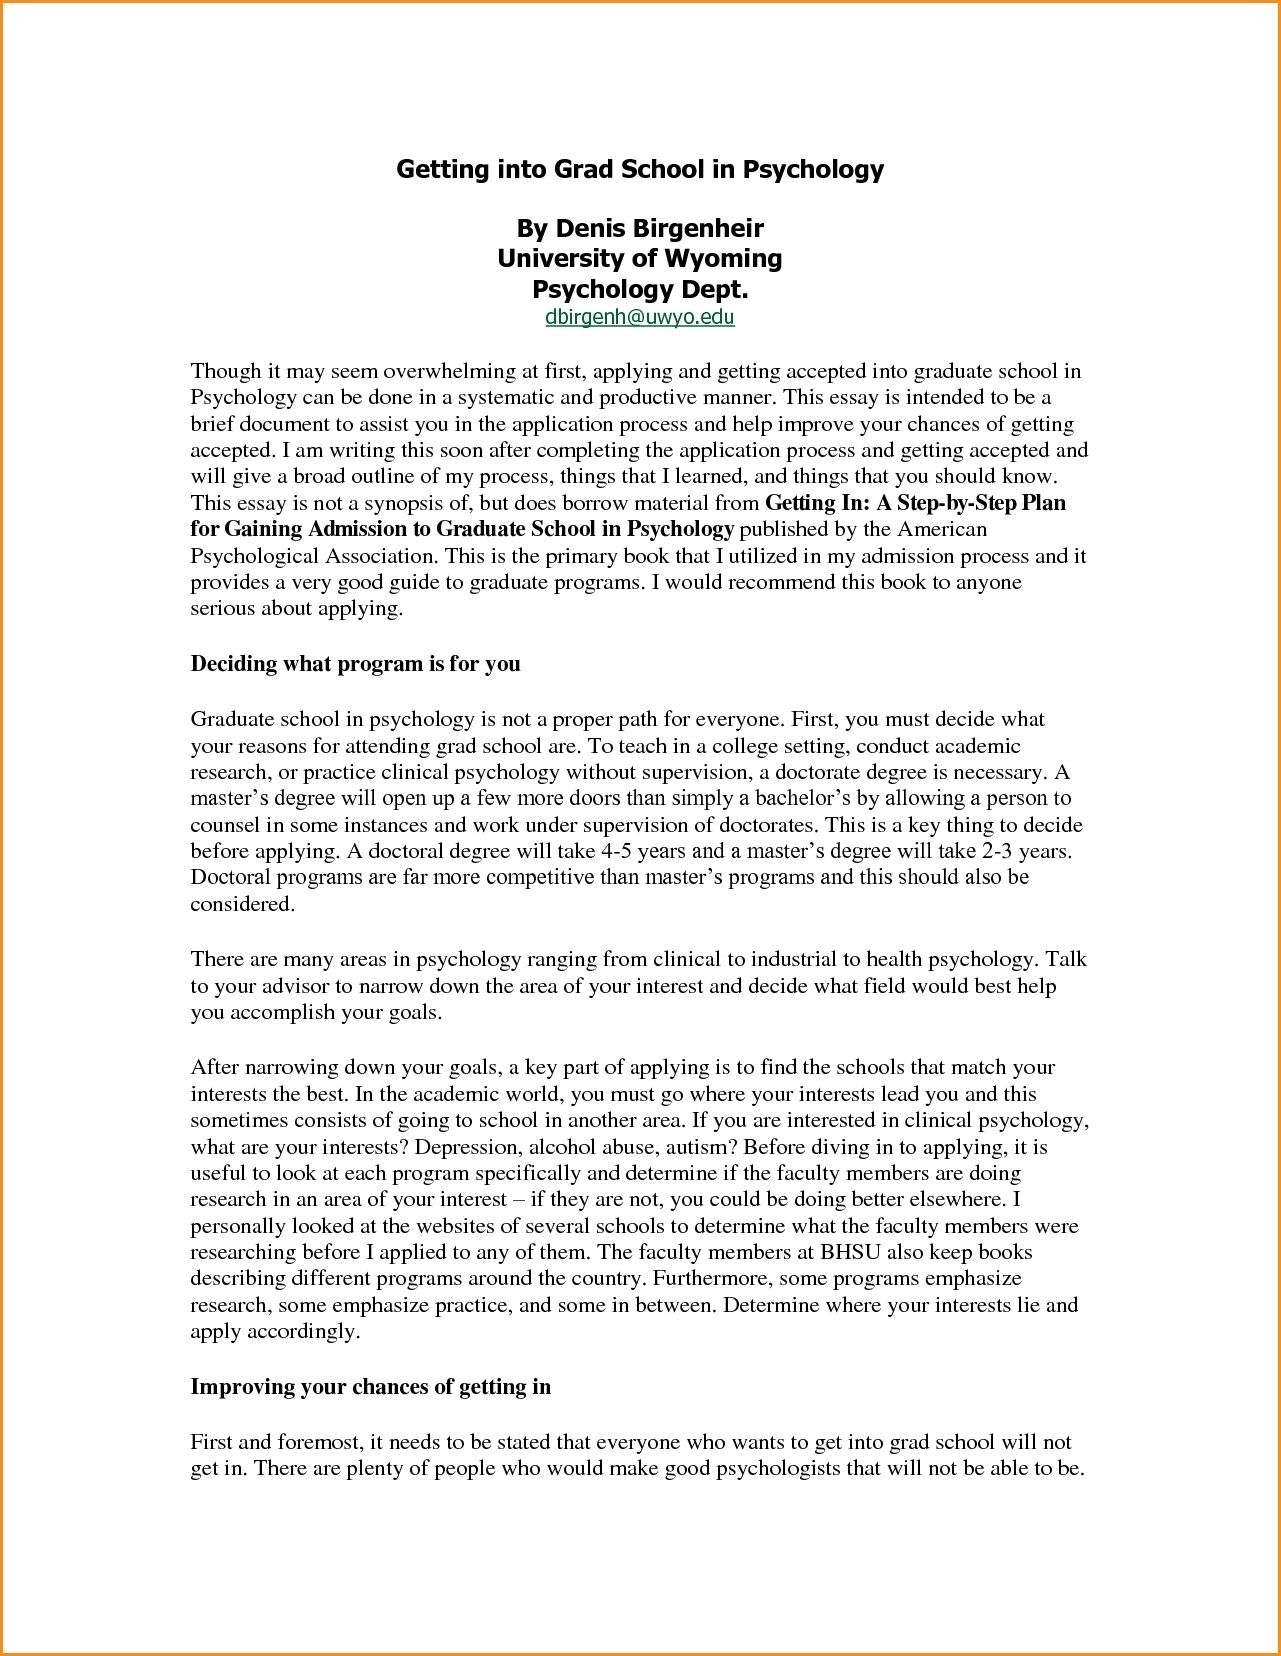 5 Paragraph Essay Layout Outline For Paragraph Essay By Heather With Regard To 5 Paragraph Essay Outline High School 201 Essay Admissions Essay Graduate School